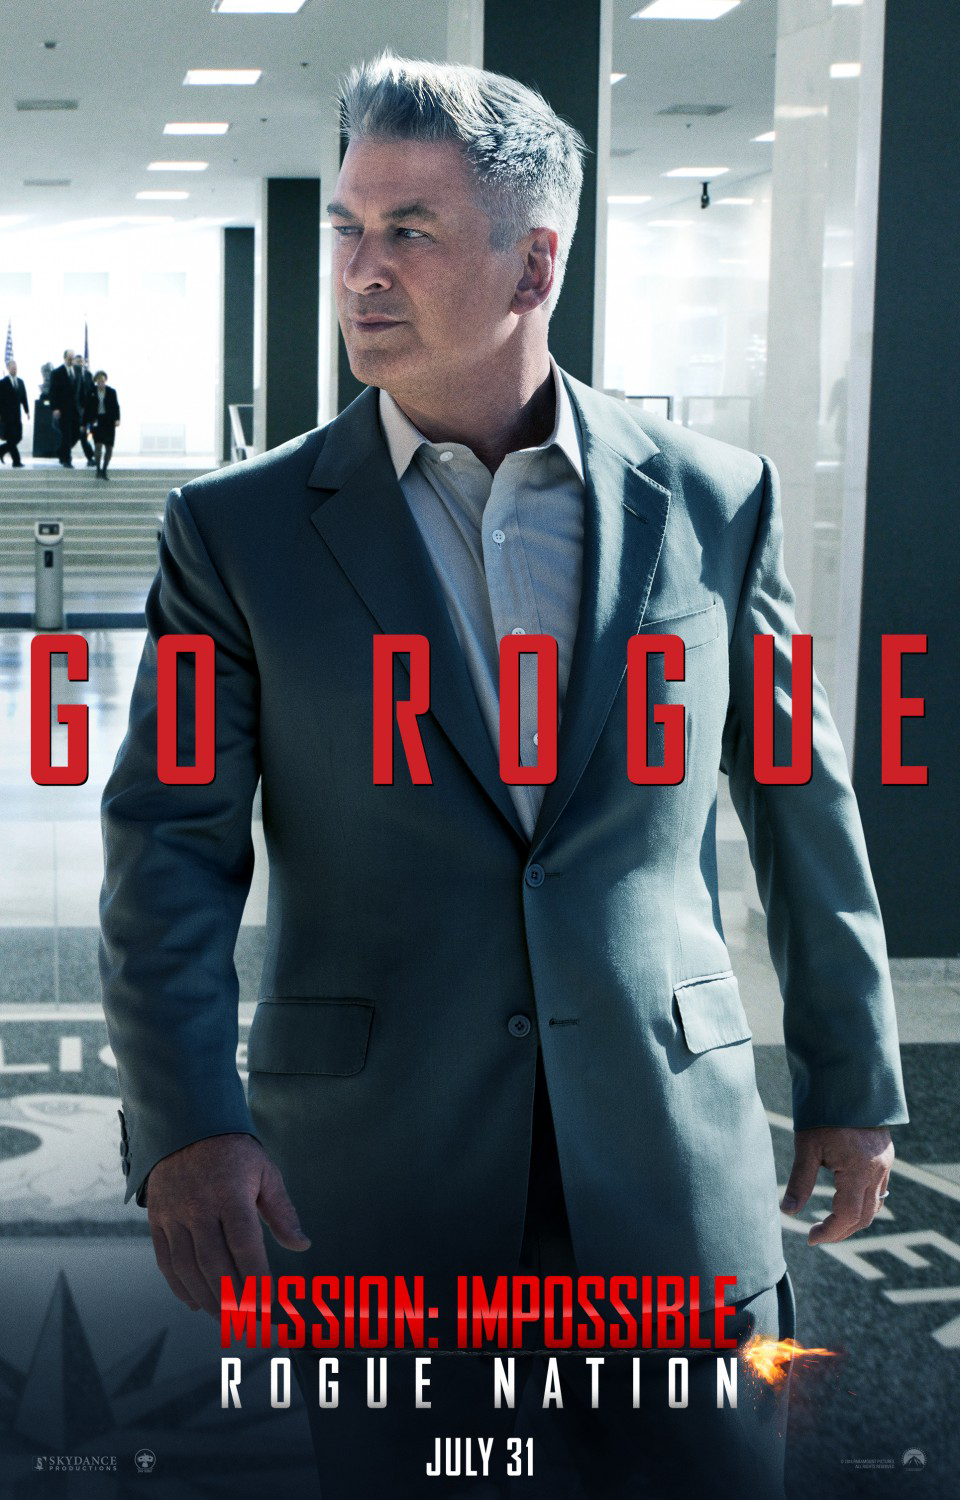 Mission Impossible: Rogue Nation Poster - Alec Baldwin